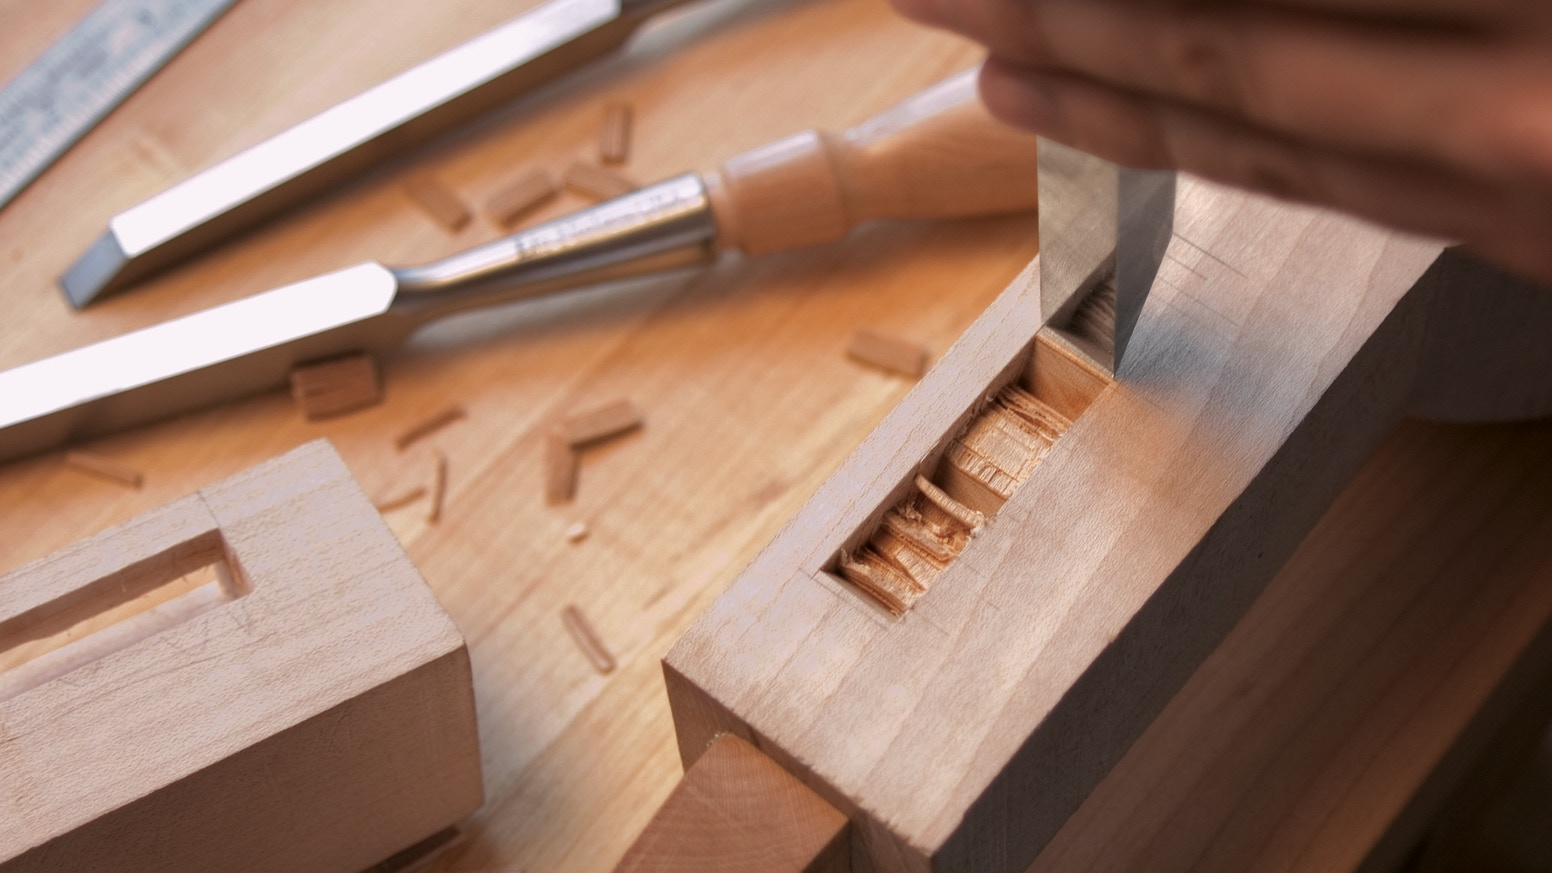 woodworkers' clubhousewoodworker's clubhouse — kickstarter